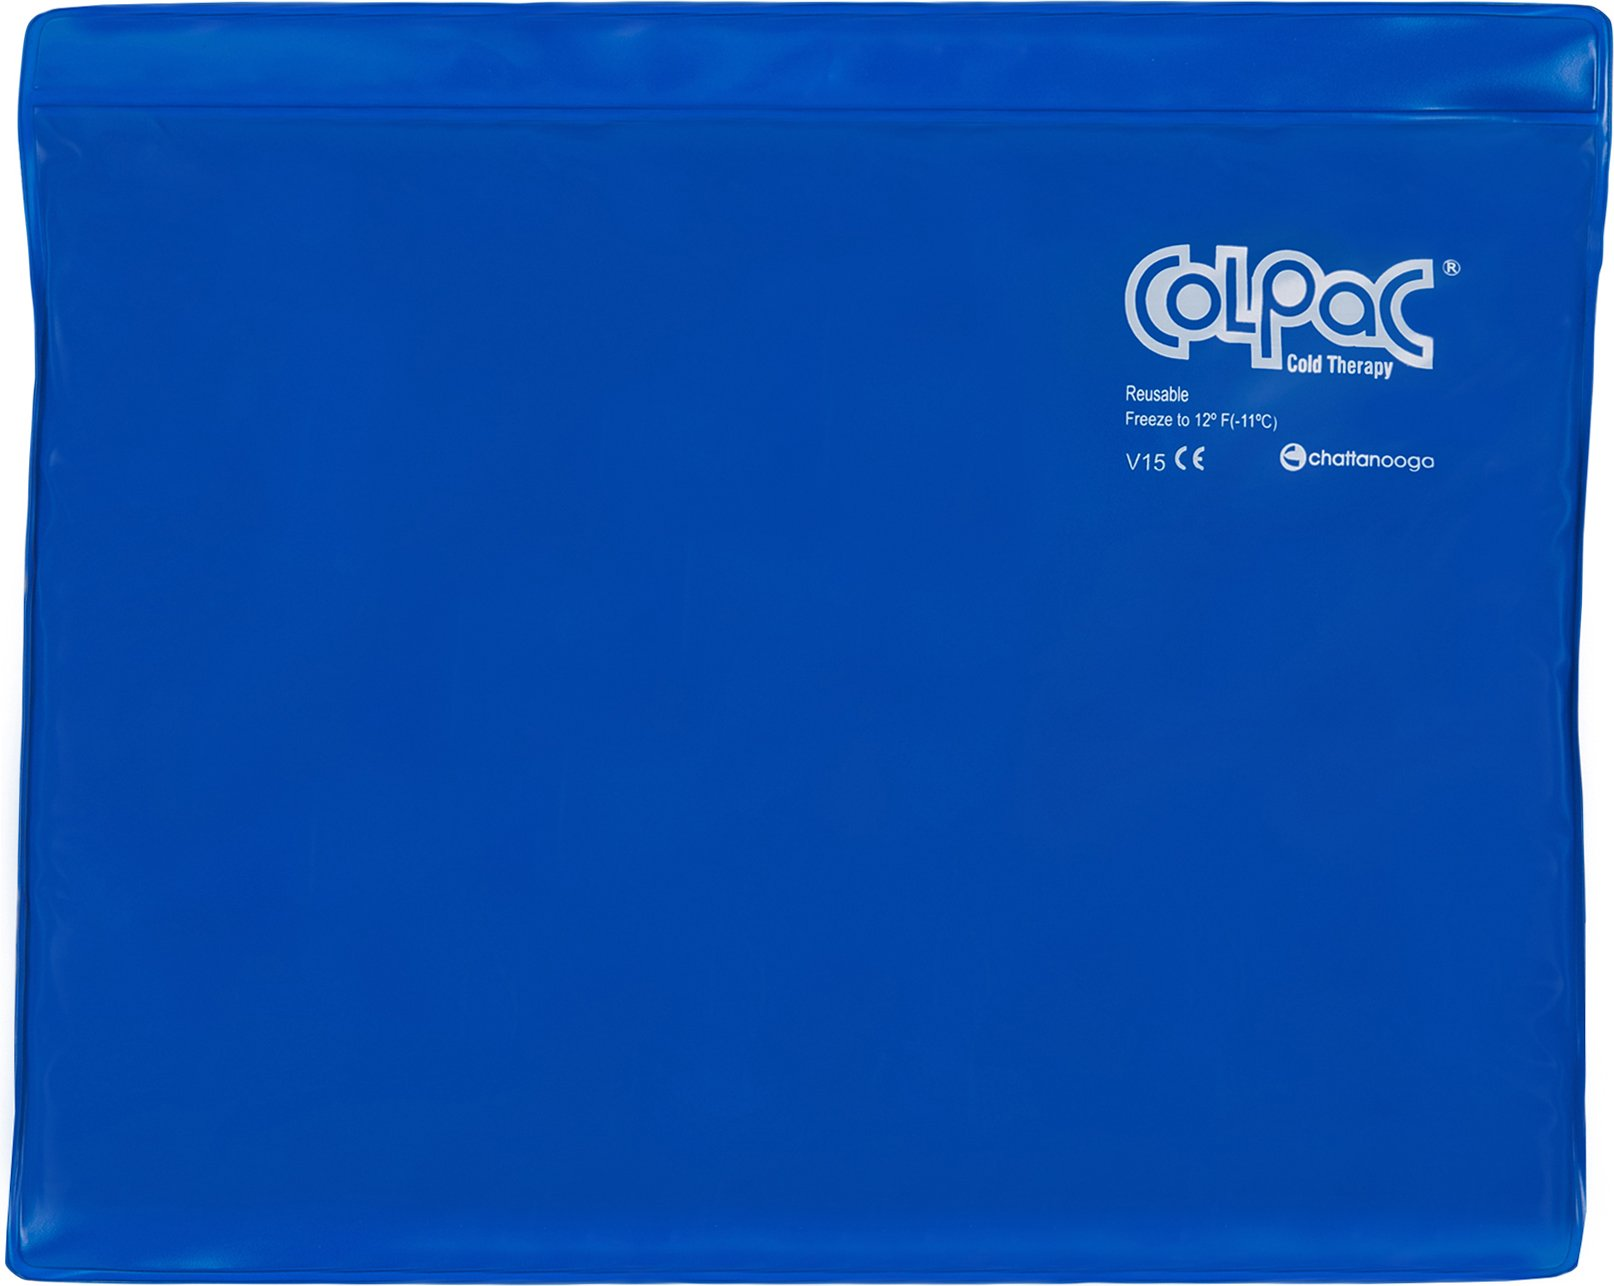 "Chattanooga ColPac Reusable Gel Ice Pack Cold Therapy for Knee, Arm, Elbow, Shoulder, Back for Aches, Swelling, Bruises, Sprains, Inflammation (11""x14"") - Blue"